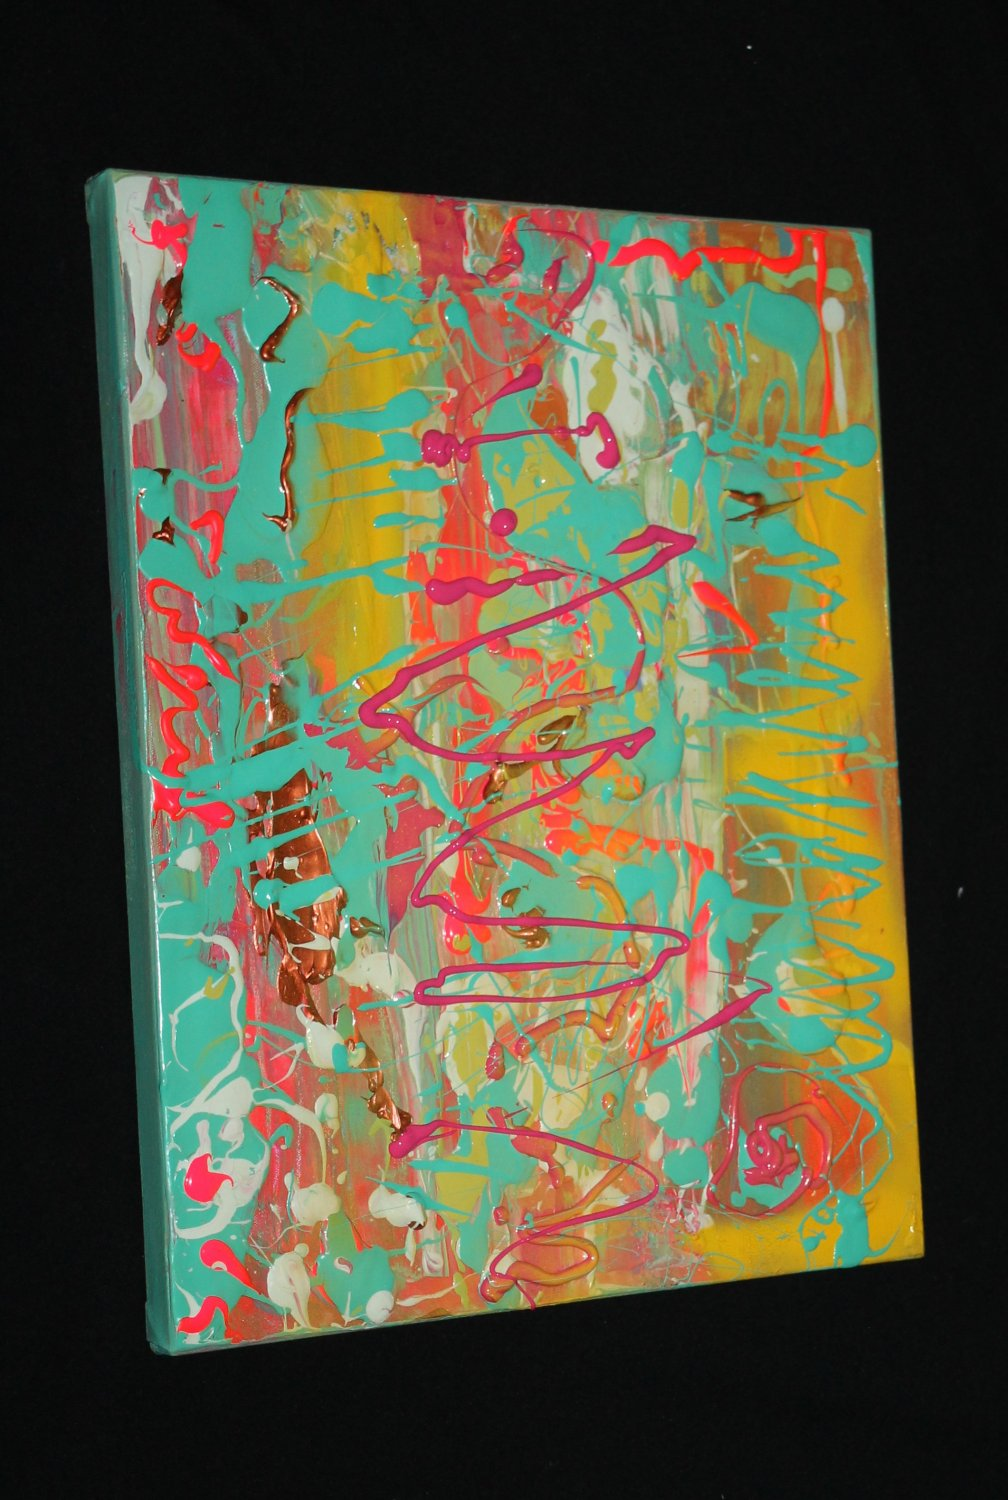 Abstract Art Painting - acrylic paint on canvas